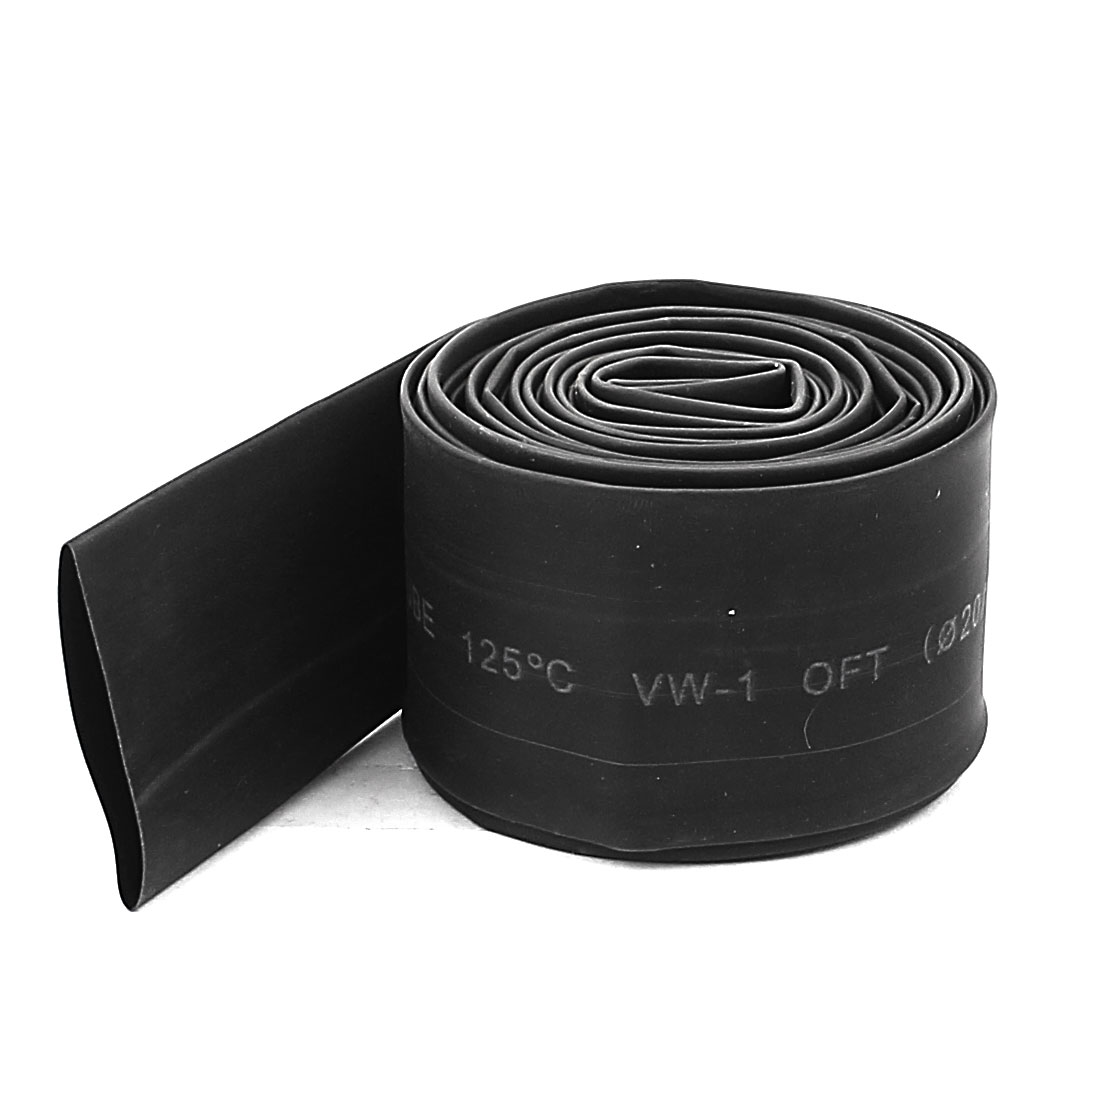 2M Length Electric Wire Cable Heat Shrink Tubing Tube Wrap Sleeve Black